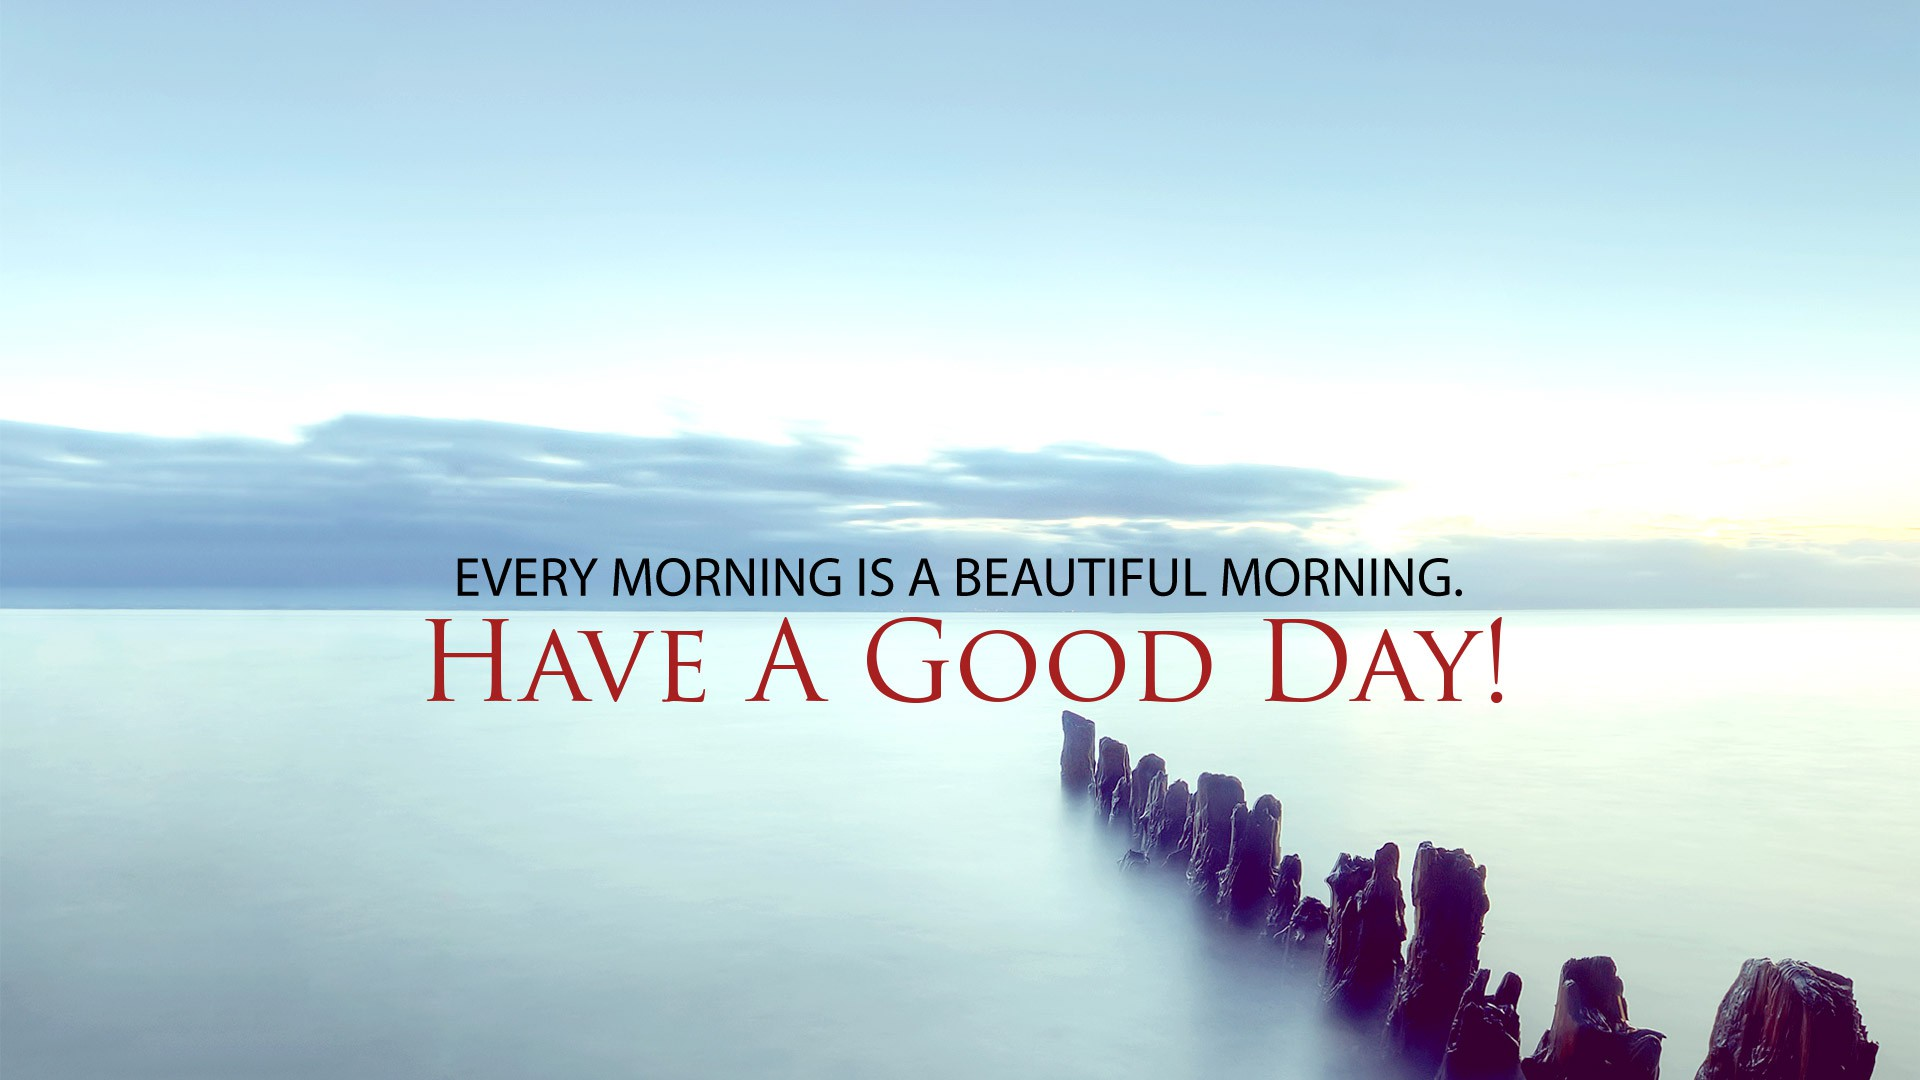 Good Day Quotes Every Morning Is A Beautiful Morning Have A Good Day